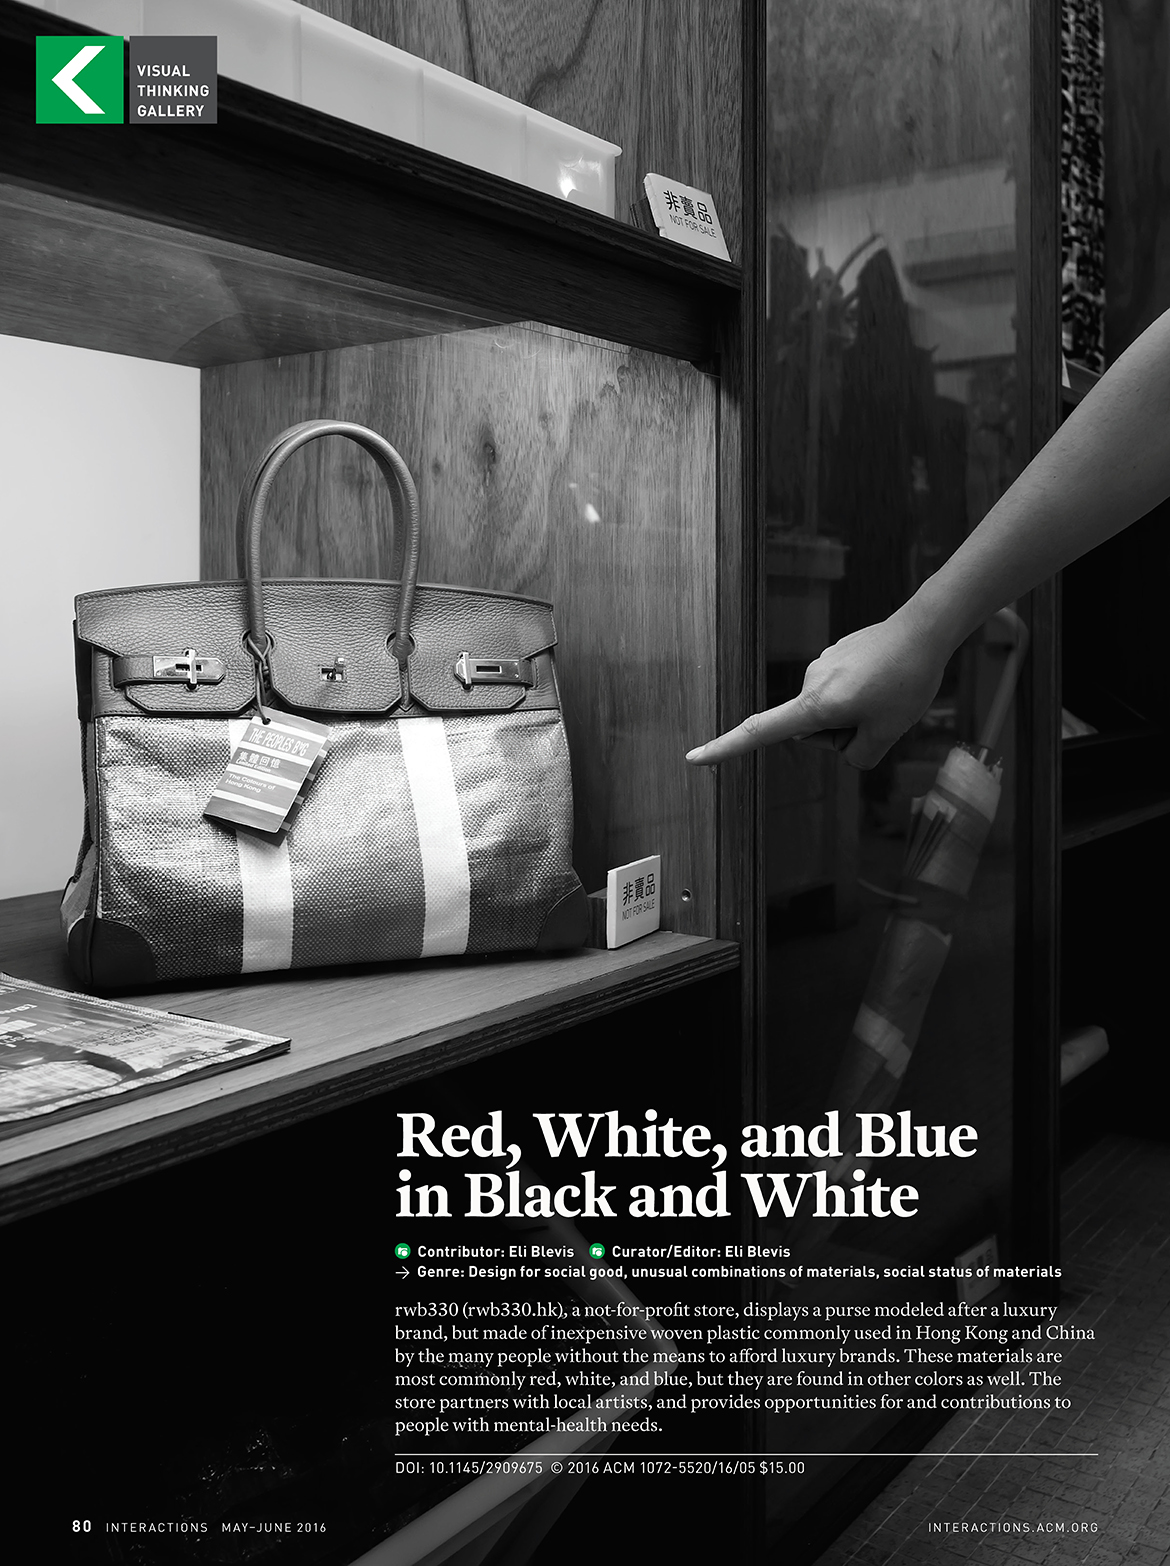 Photograph: Red, White, and Blue in BW